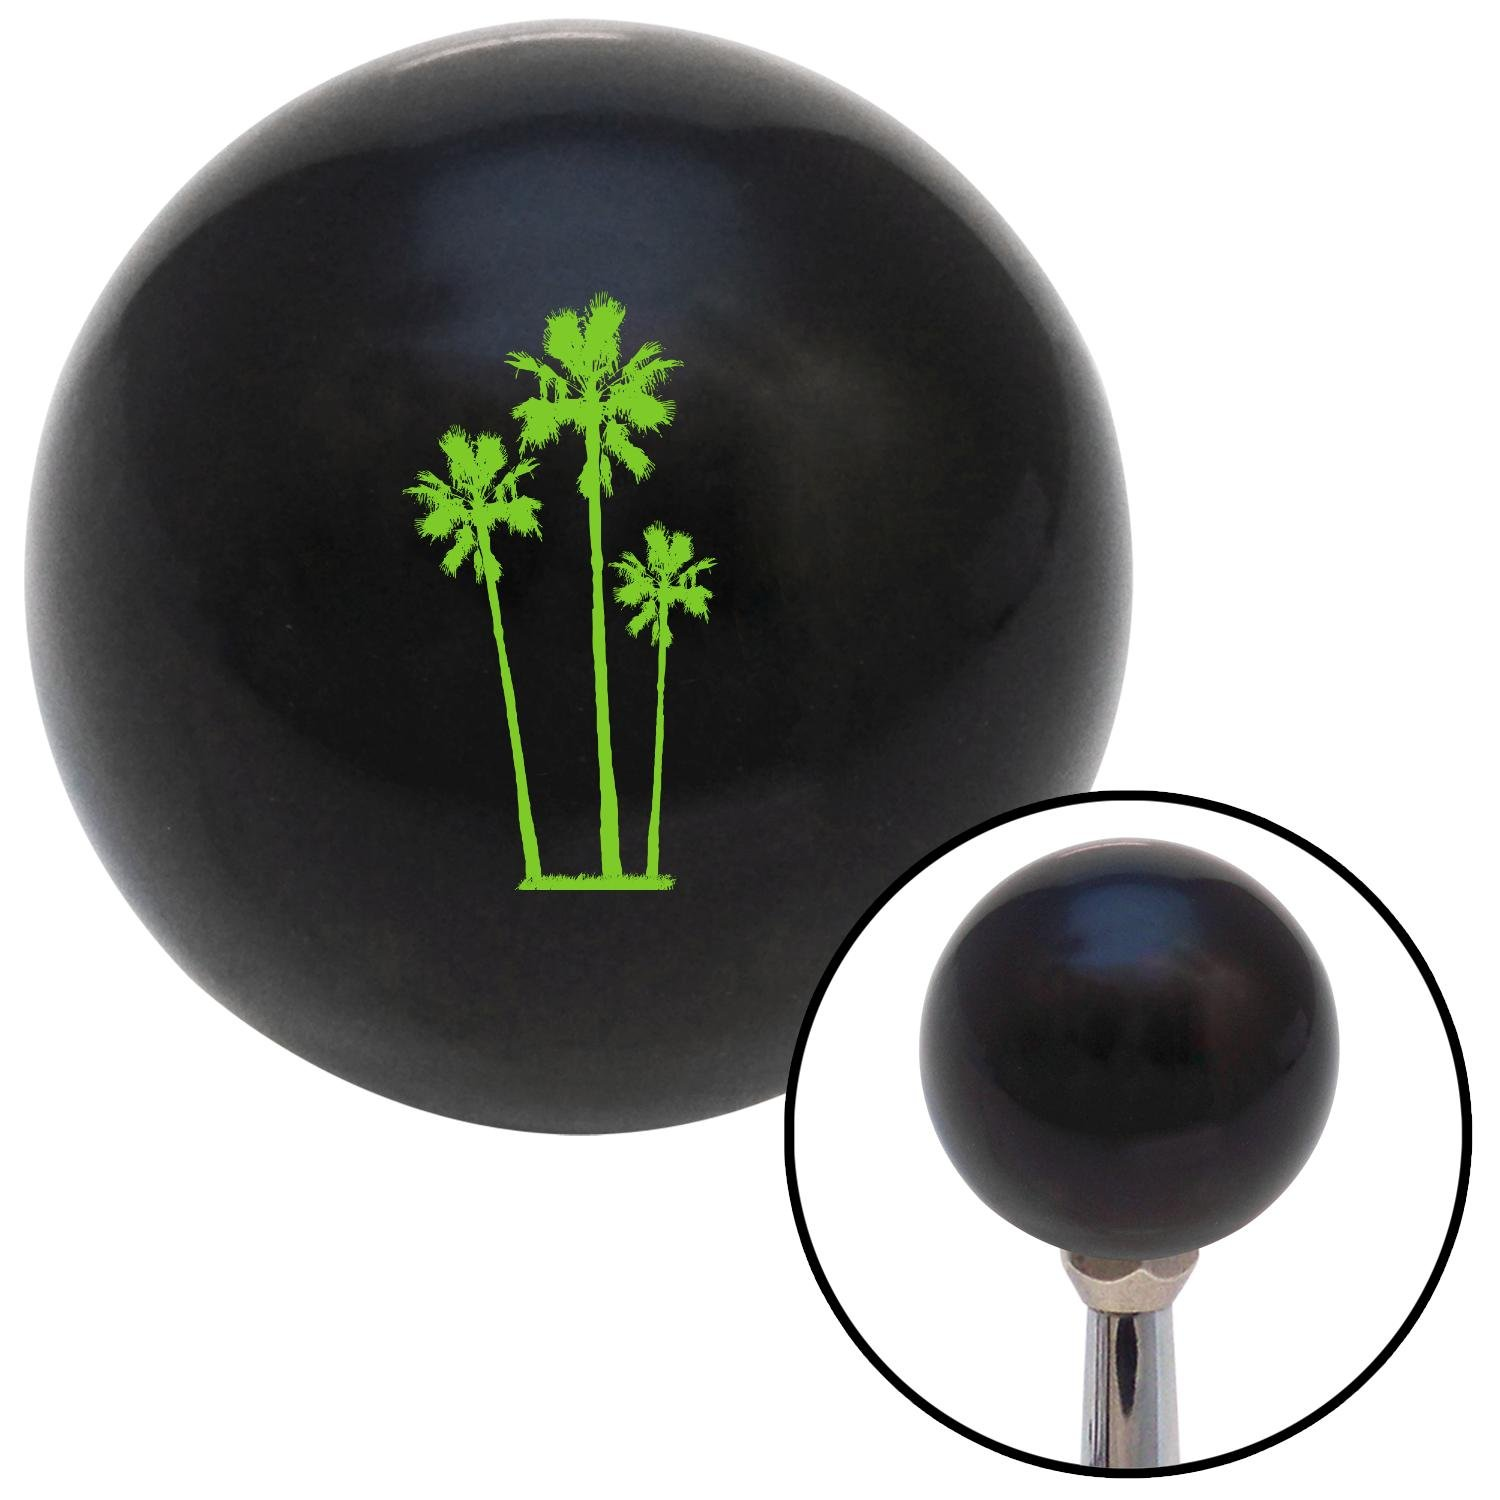 American Shifter 104881 Black Shift Knob with M16 x 1.5 Insert Green Group of Palms